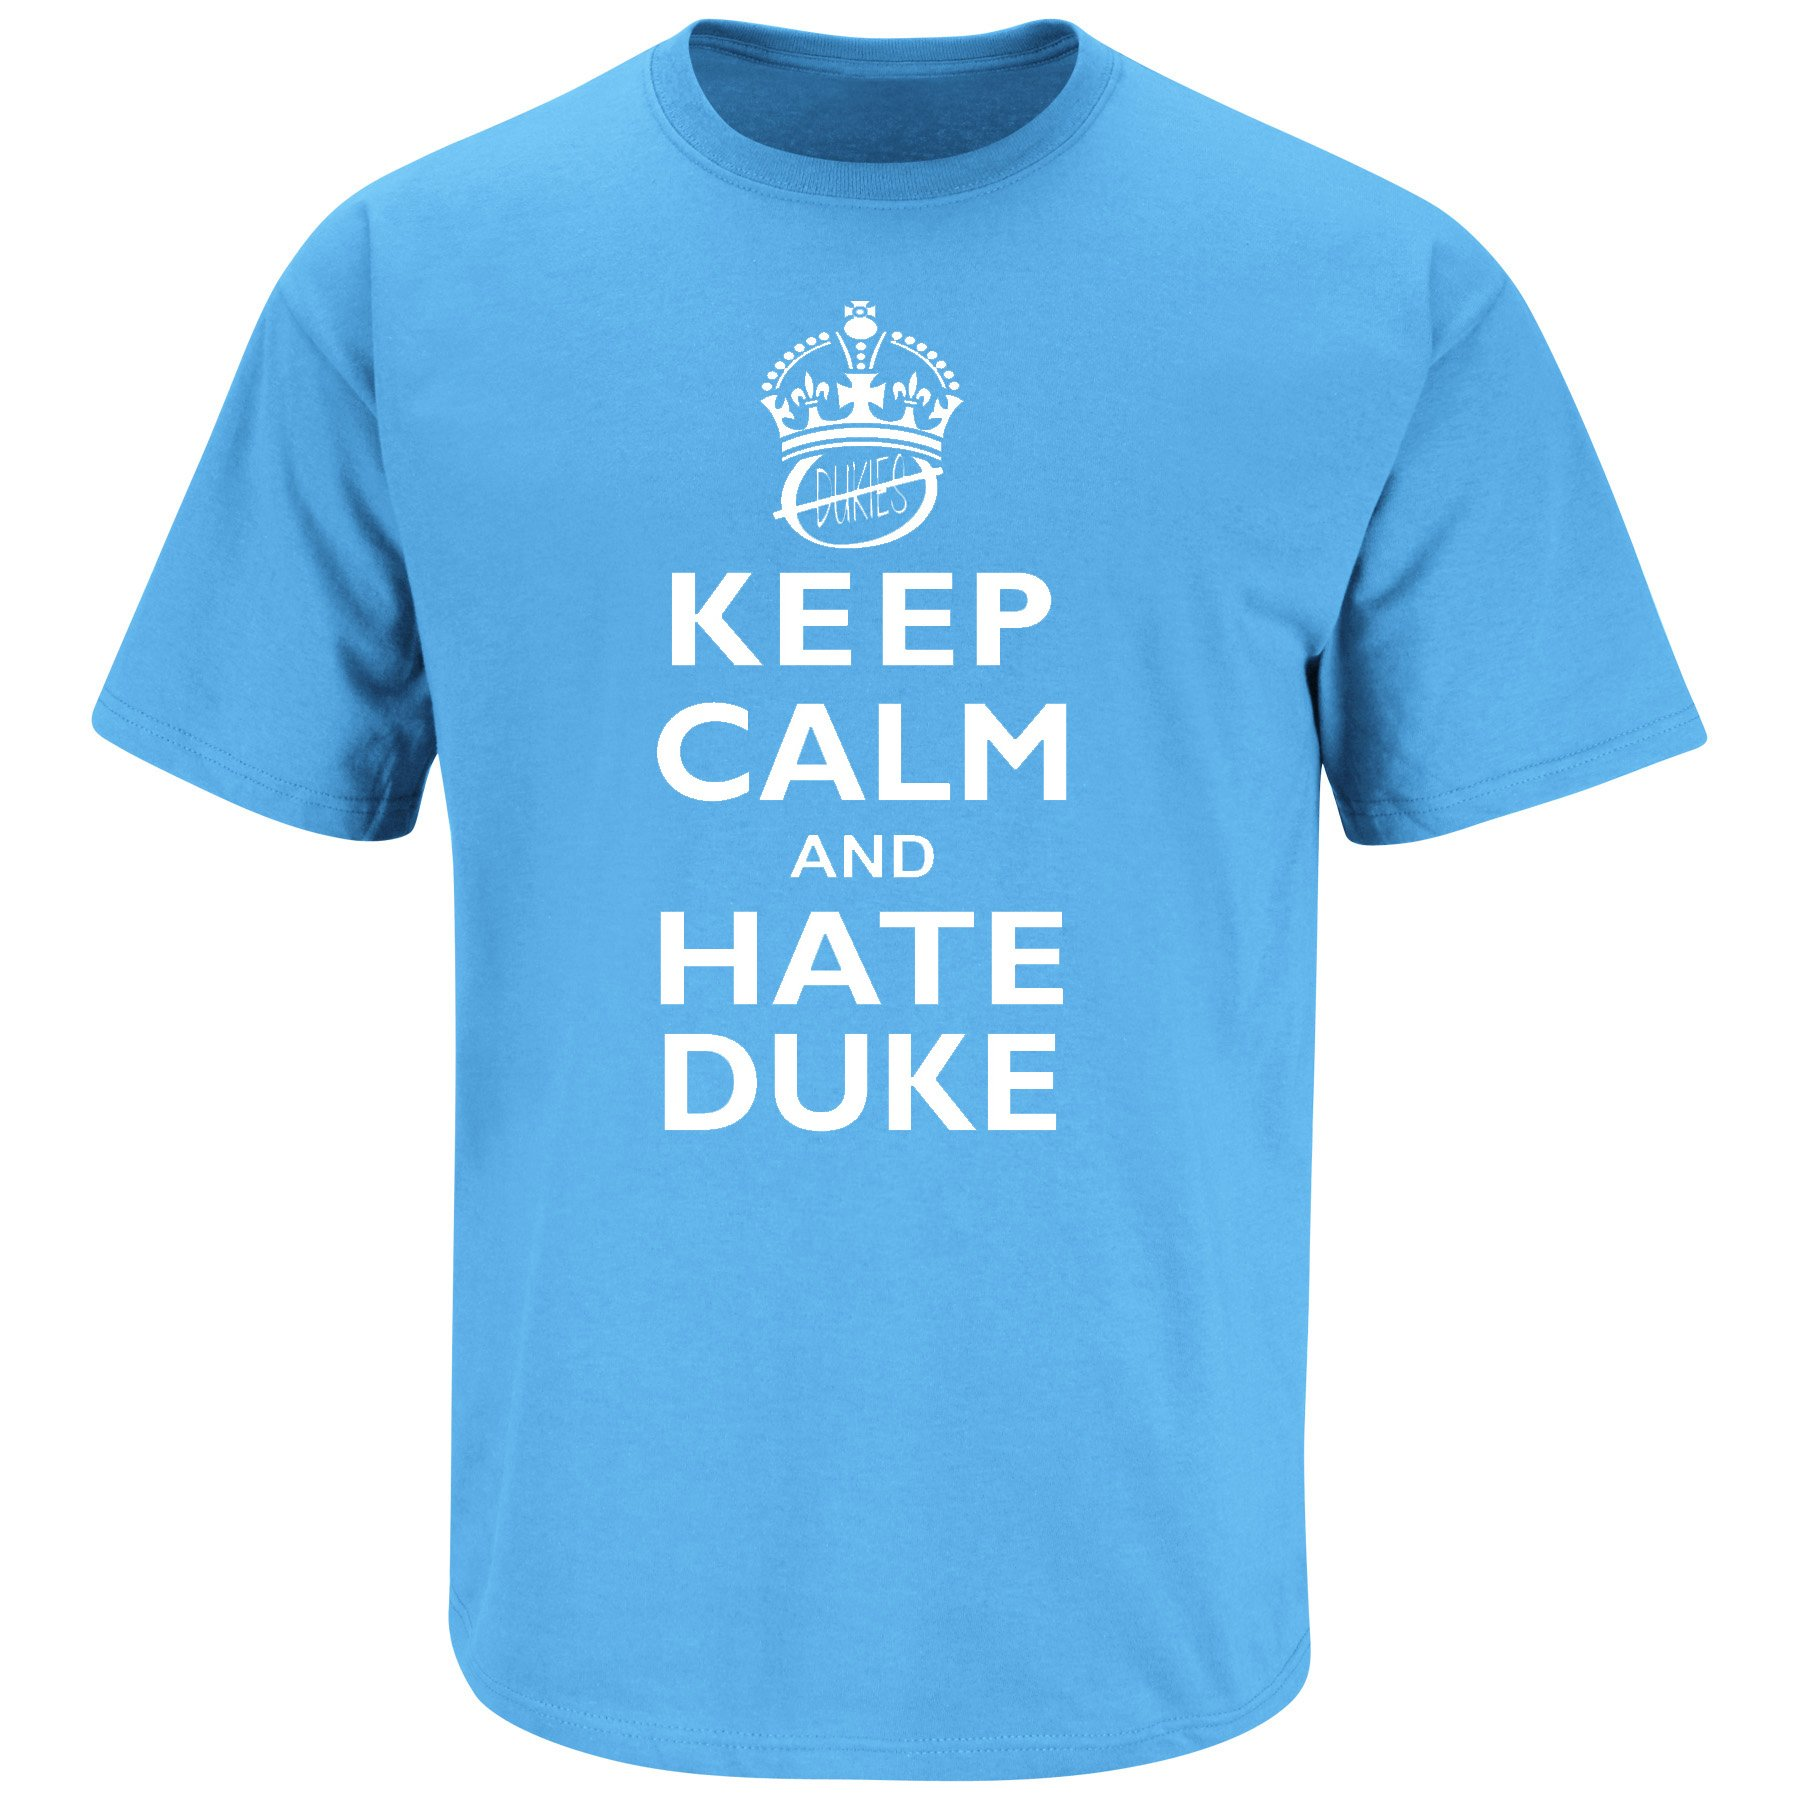 North Carolina Basketball Fans. Keep Calm and Hate Duke. T-Shirt (Sm-5X) (Large)